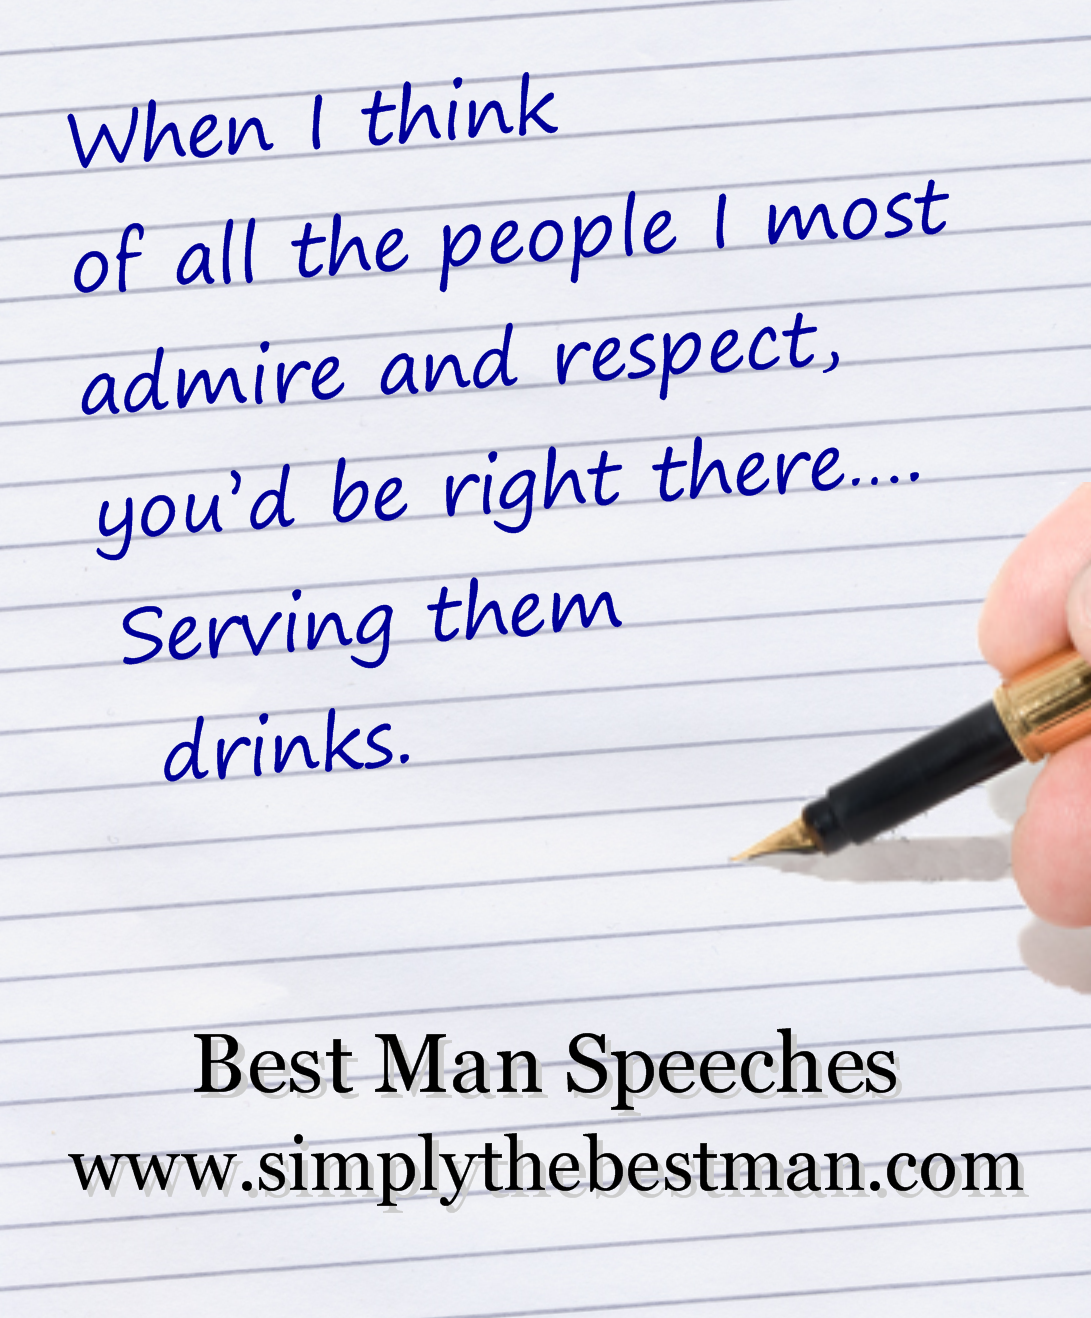 Wedding Speeches From Simply The Best Man